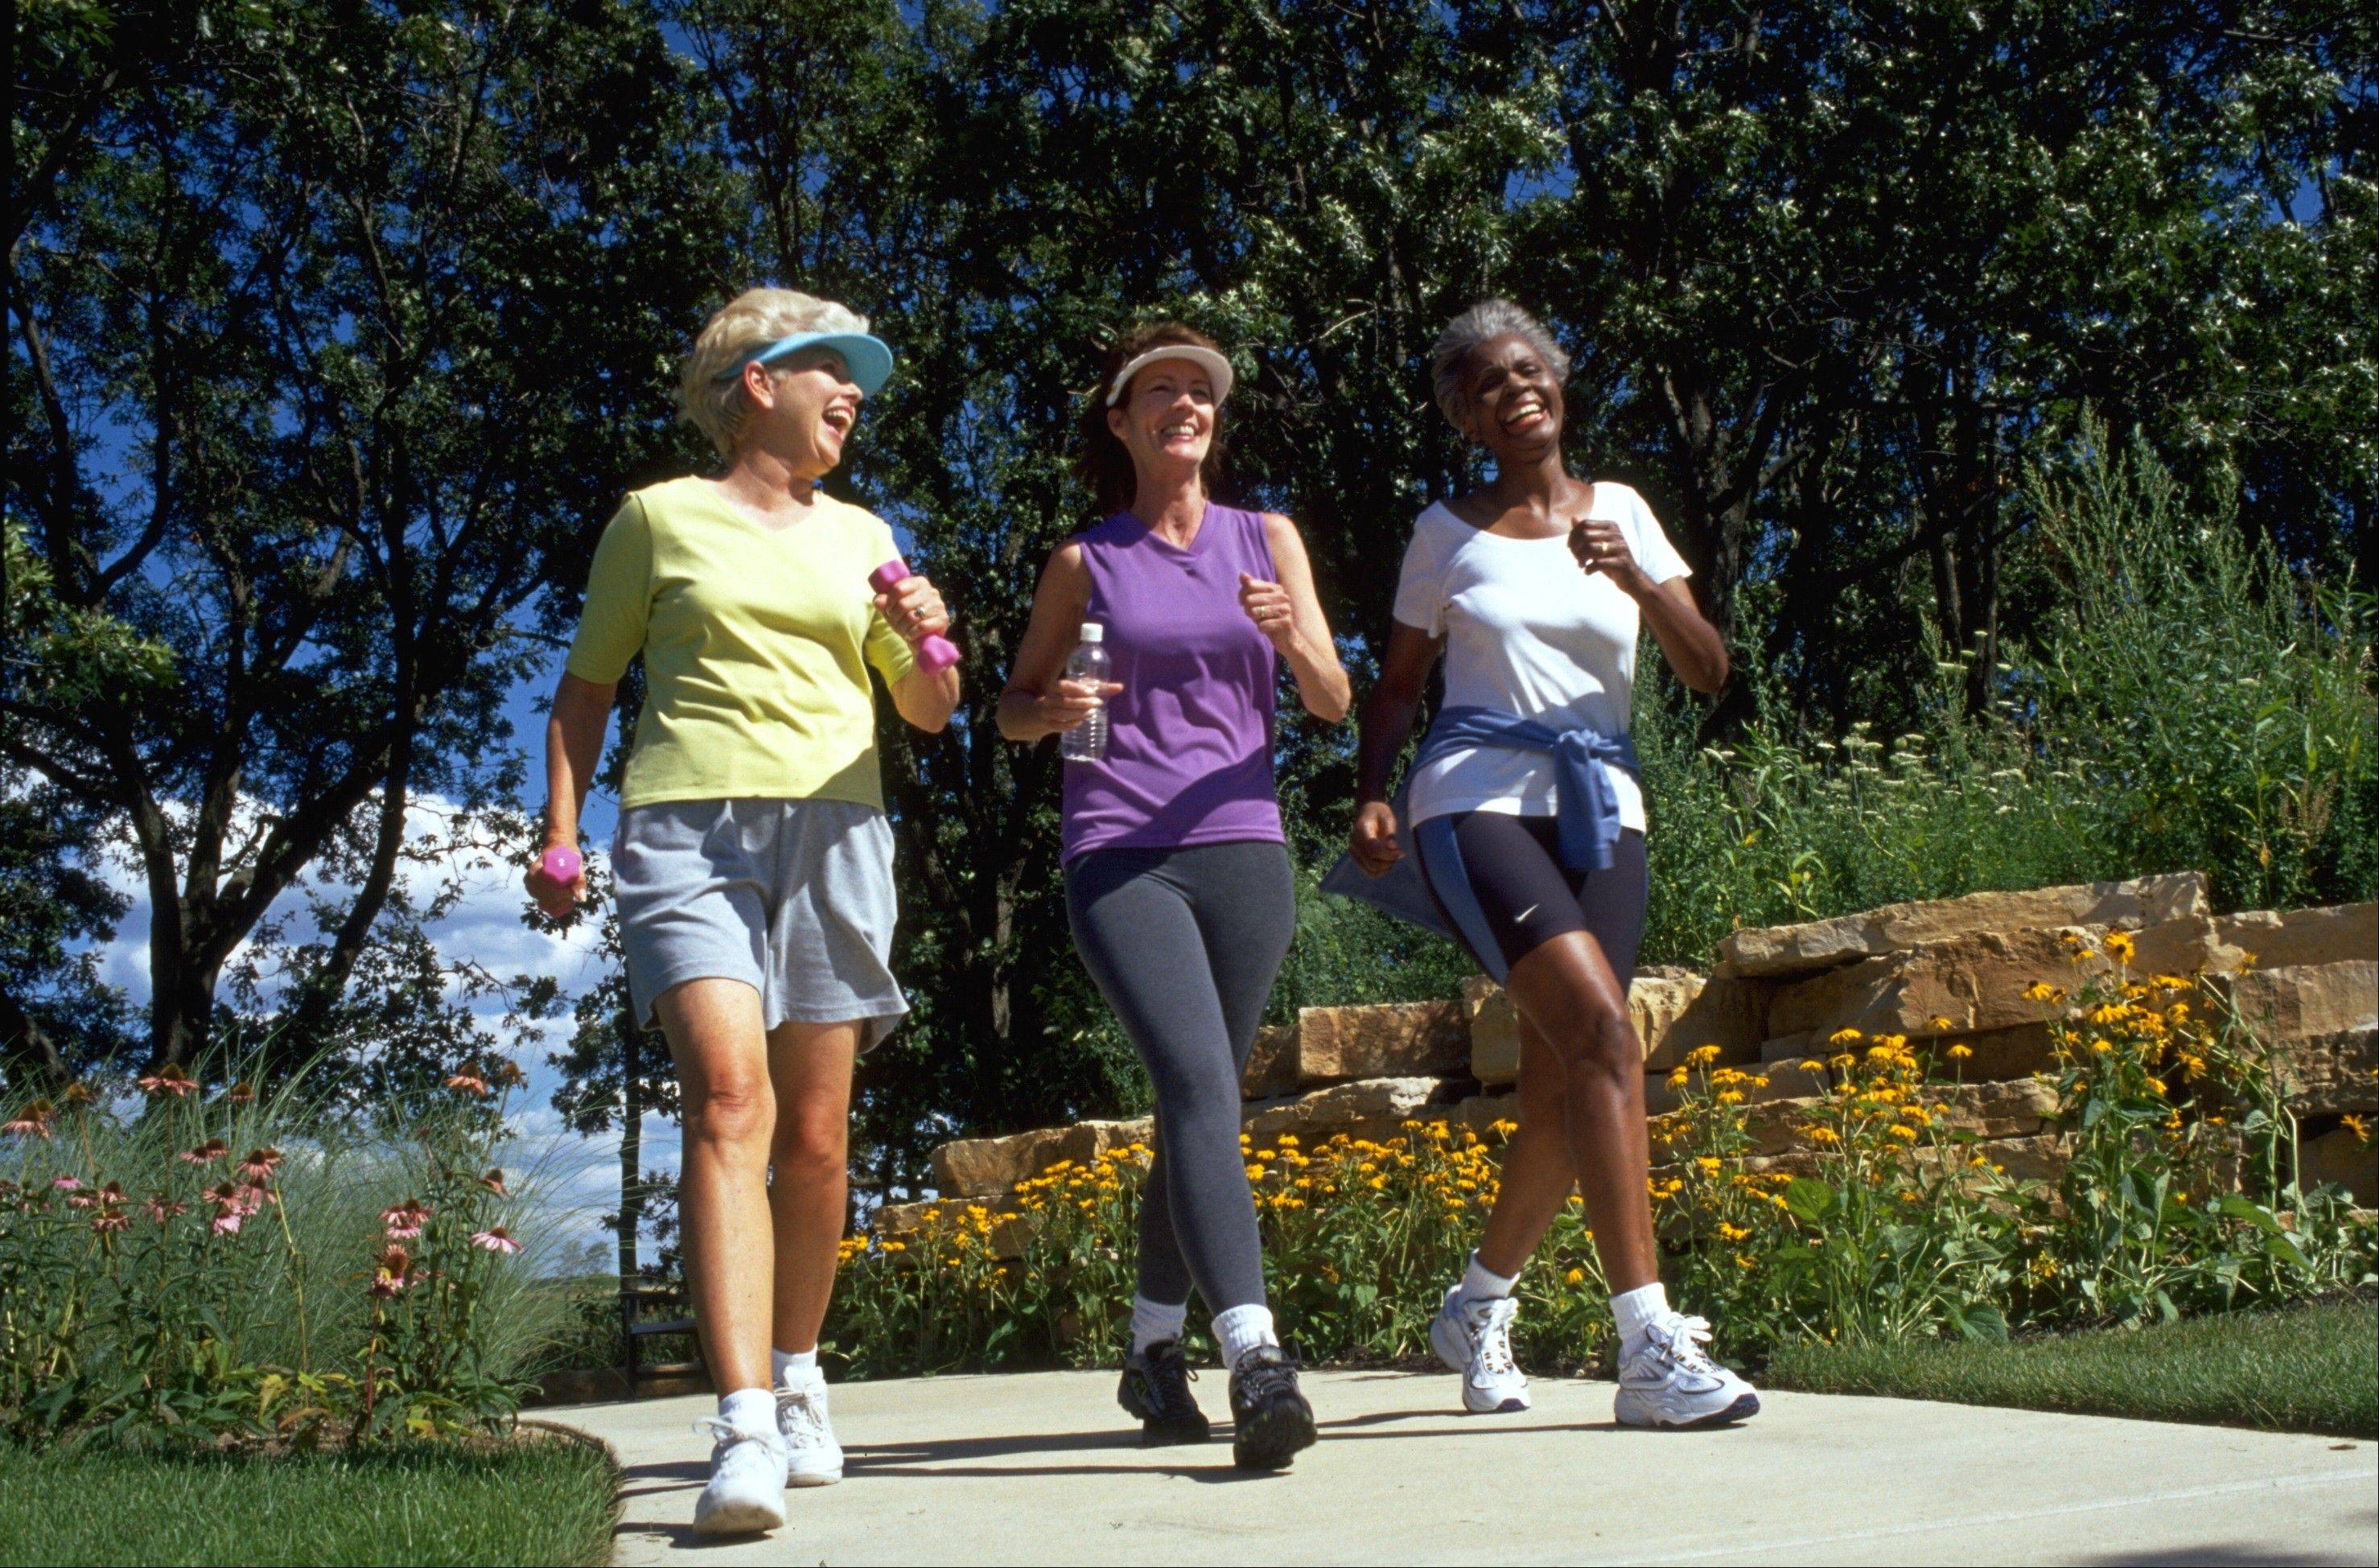 Walkers at Sun City in Huntley keep active and have fun.